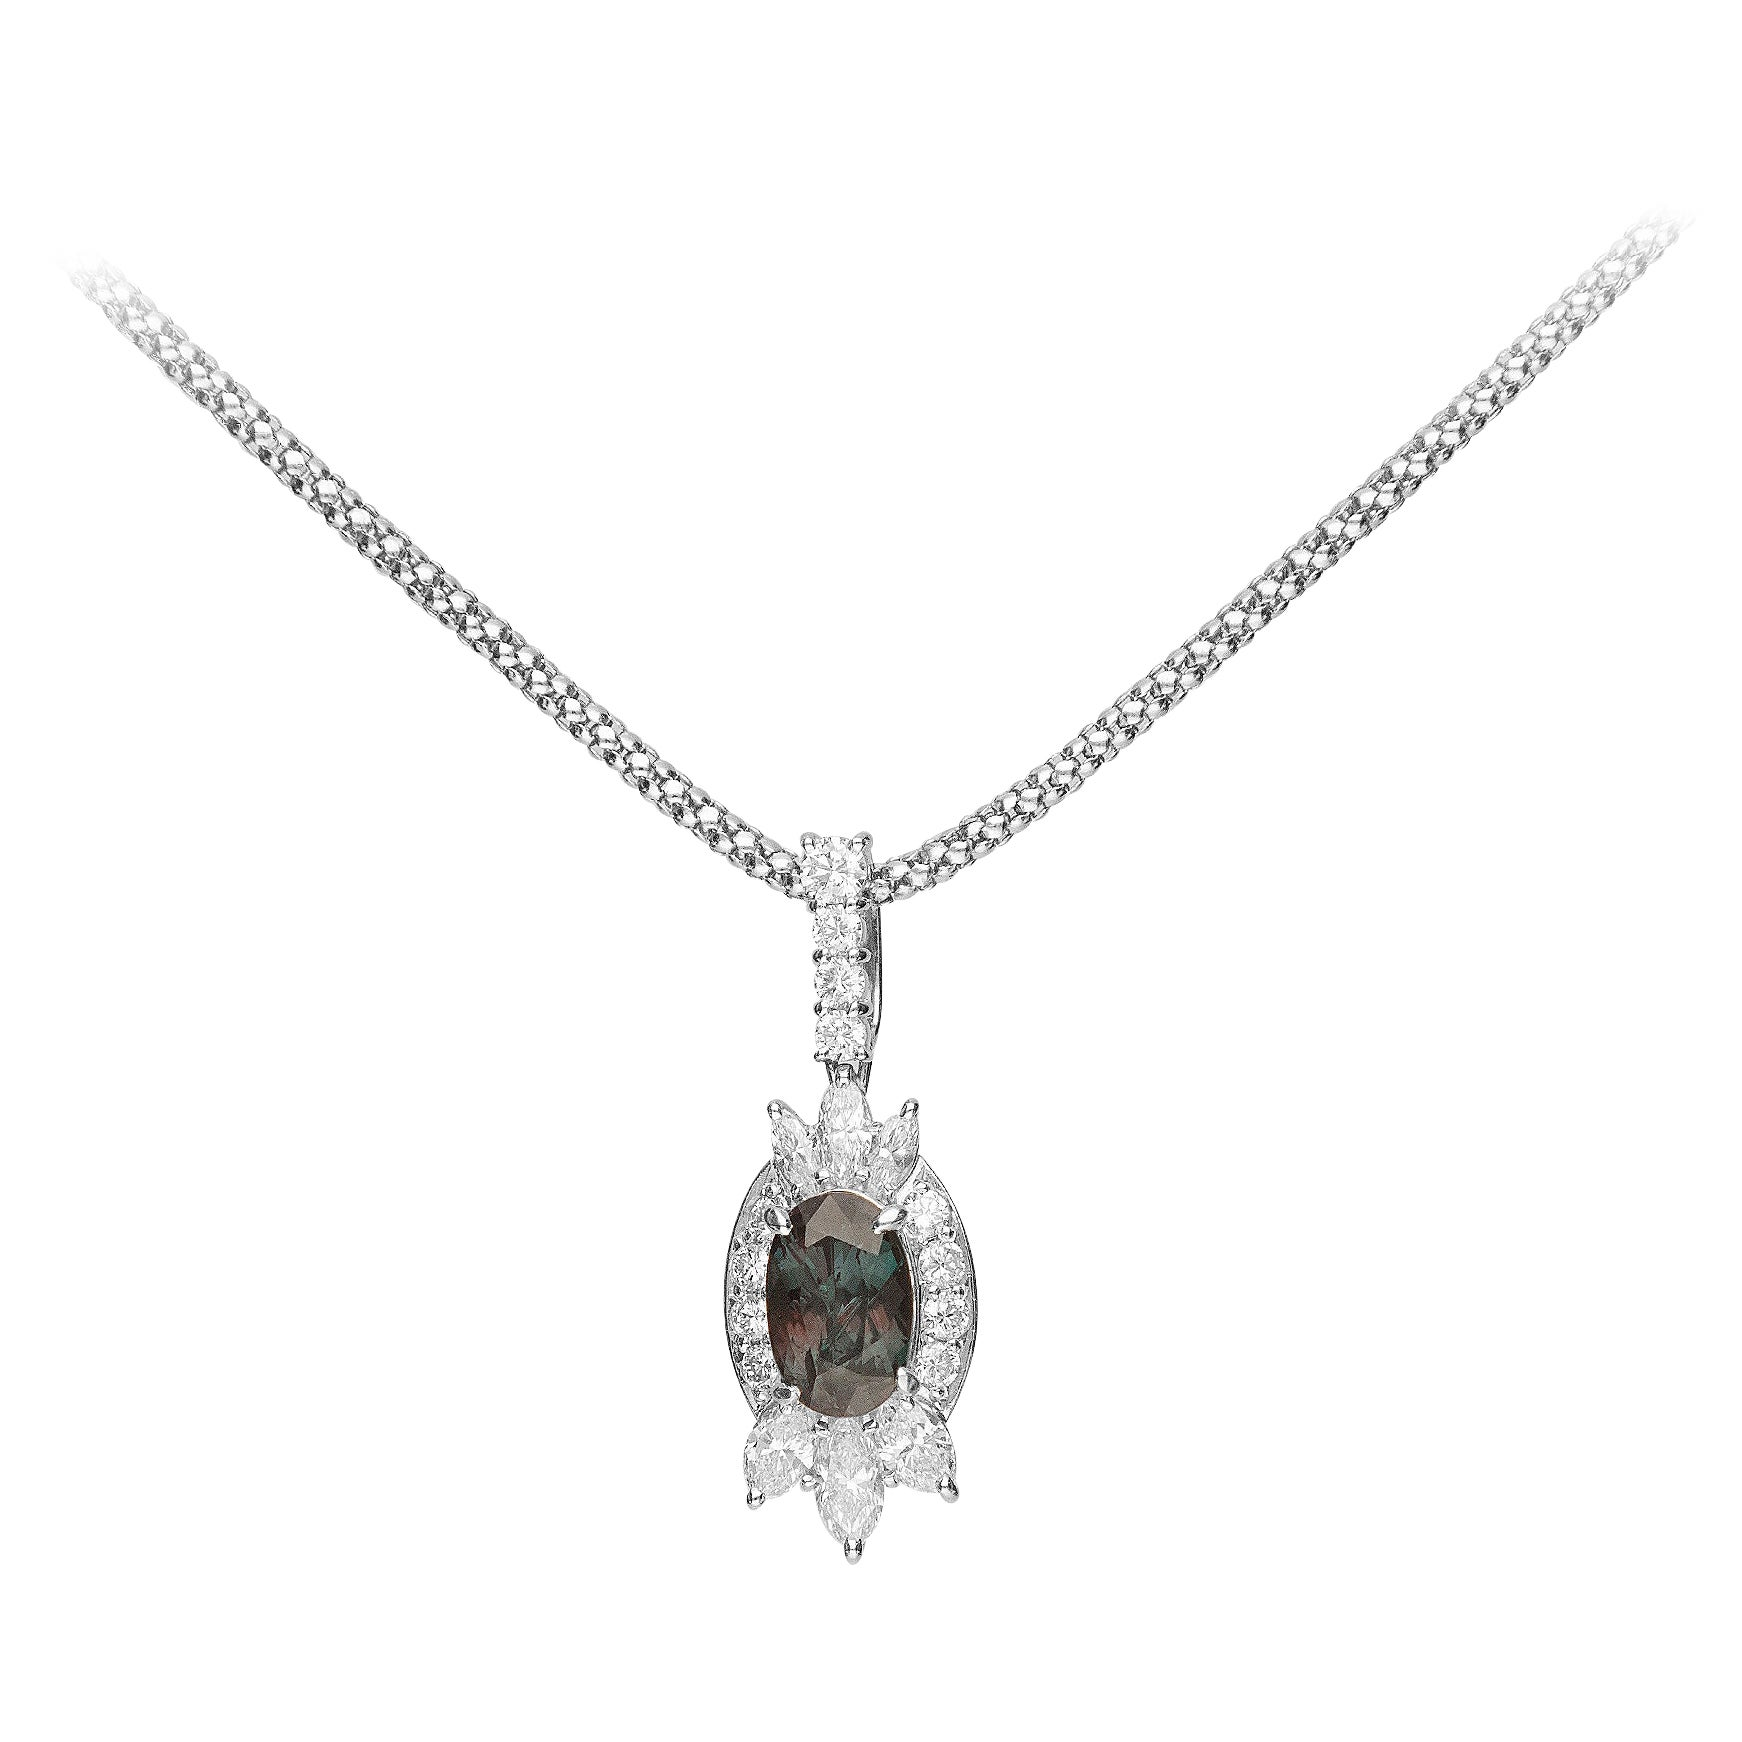 1.70 Carat Alexandrite and Diamond Pendant Necklace